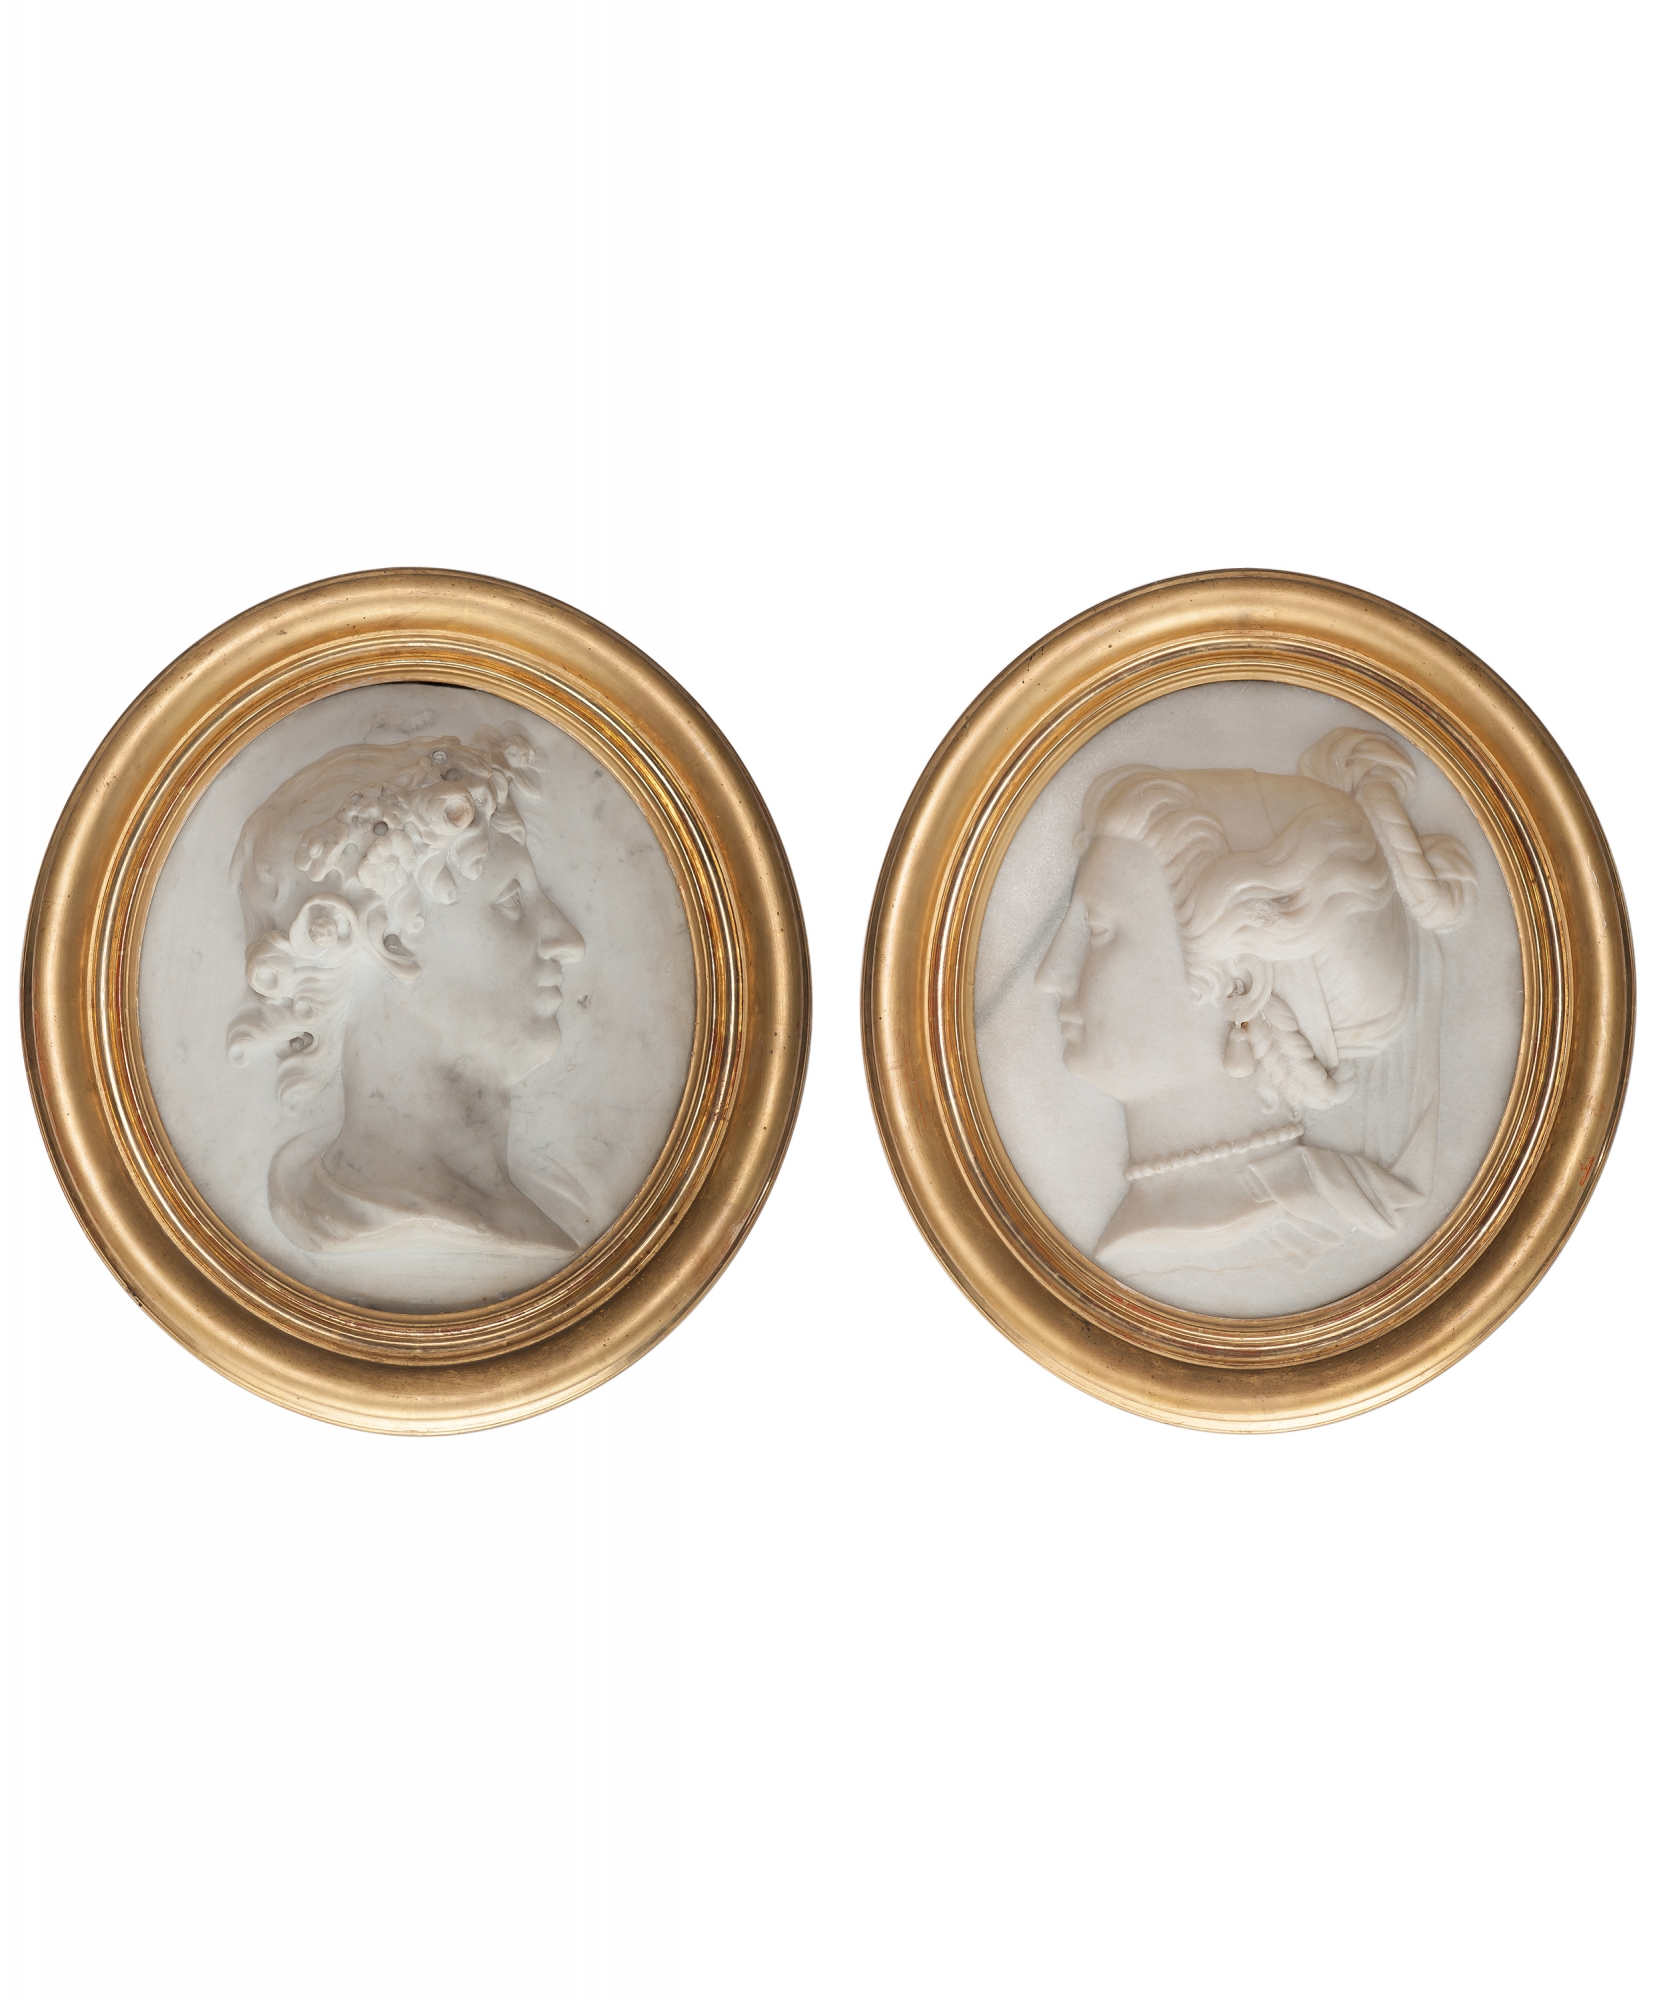 19th Century Pair Of White Marble Profile Portraits With